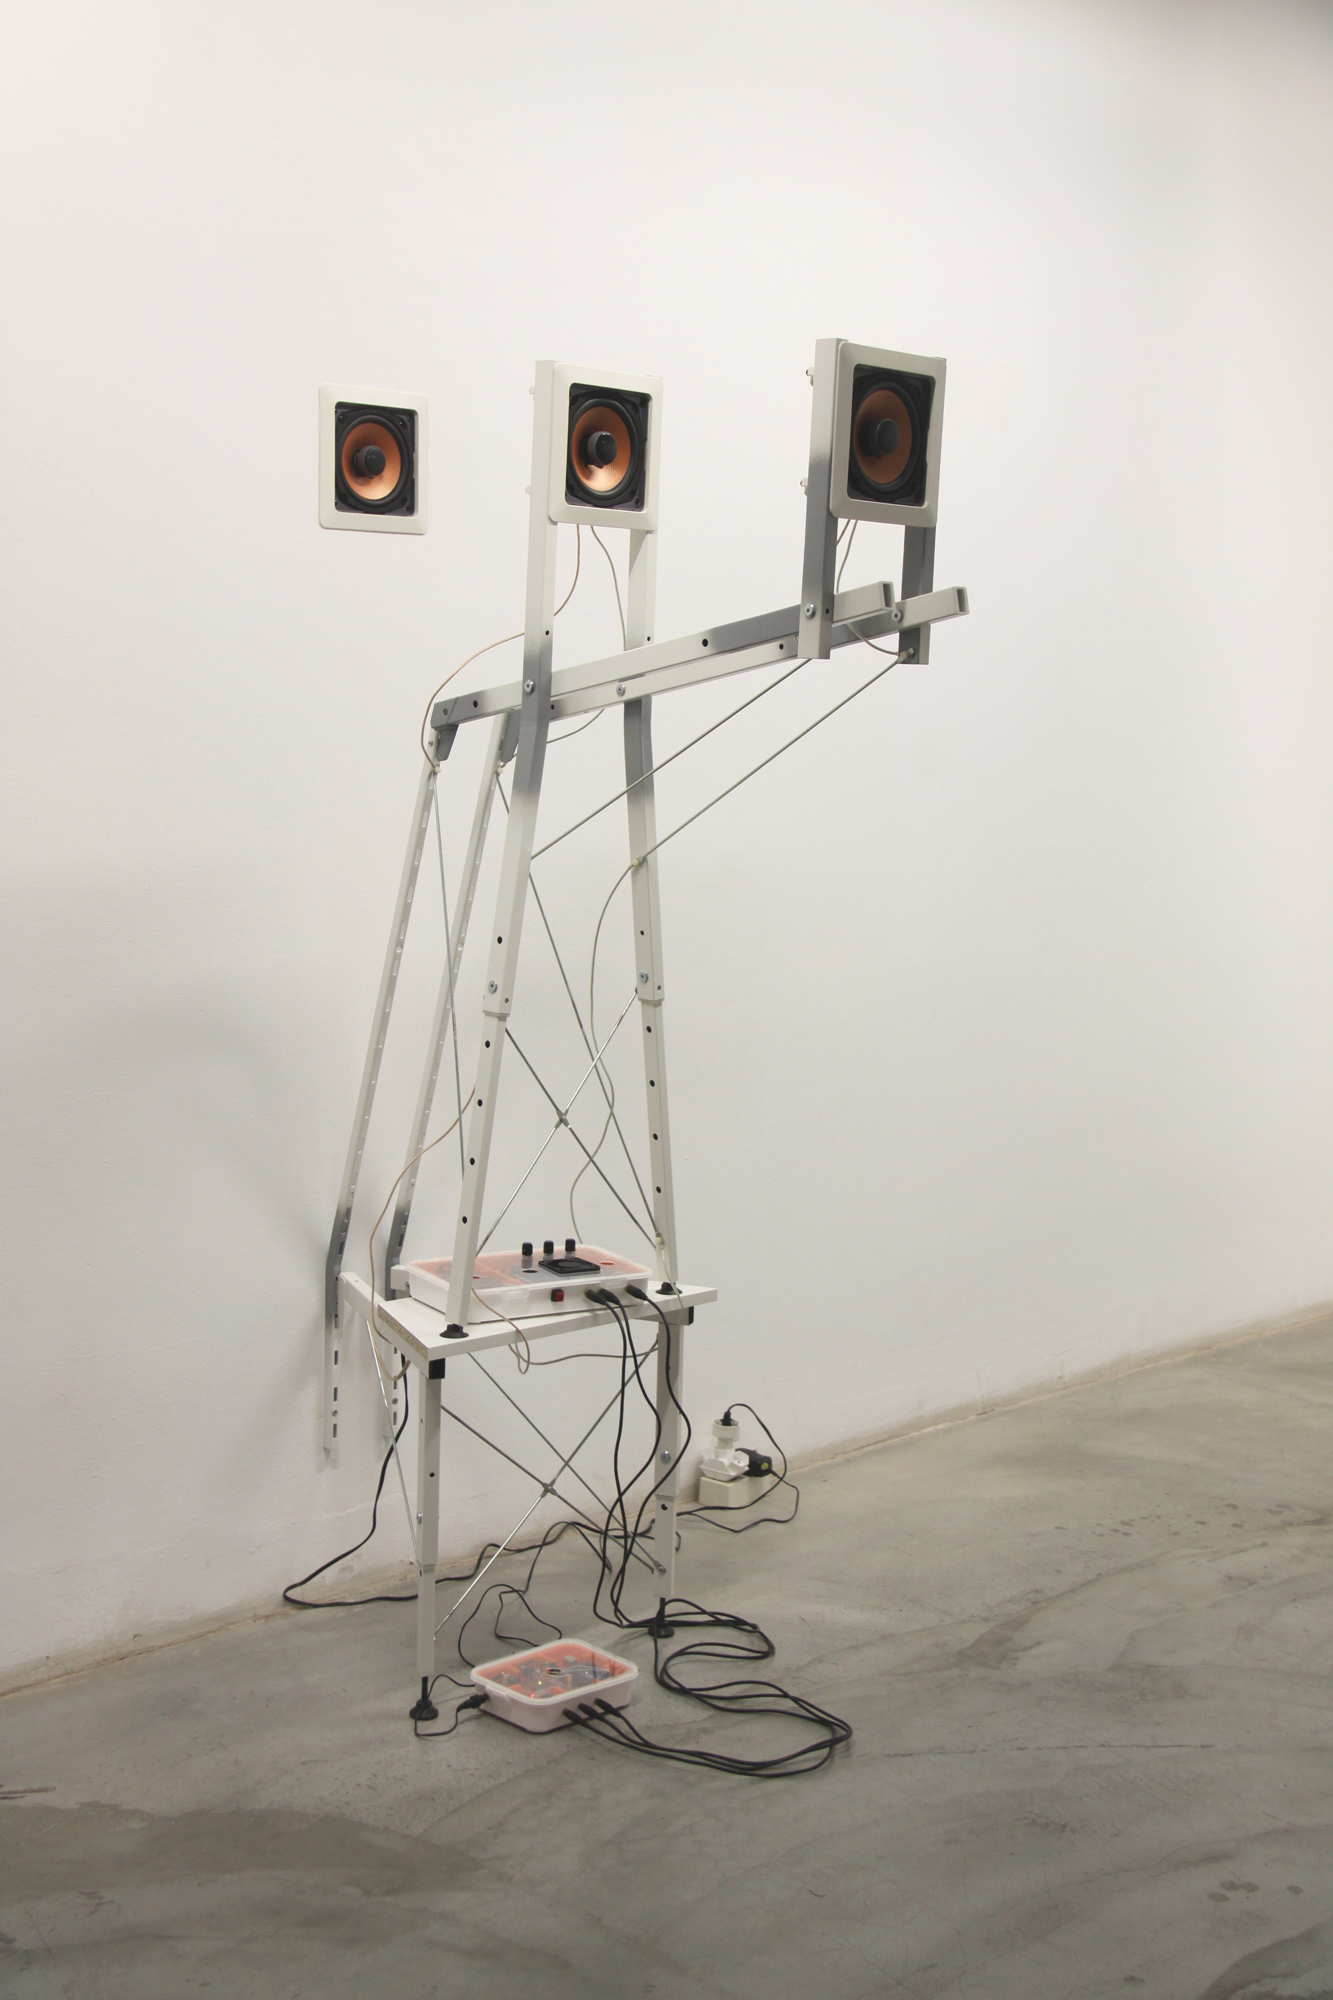 Jeff Carter, Construction E, 2012, modified IKEA products (laminated MDF, steel, plastic, hardware), speakers, amplifier, programmed Arduino microcontroller, electronics, 3-­‐channel sound composition by Lou Mallozzi, 64 H x 20 W x 36 D inches